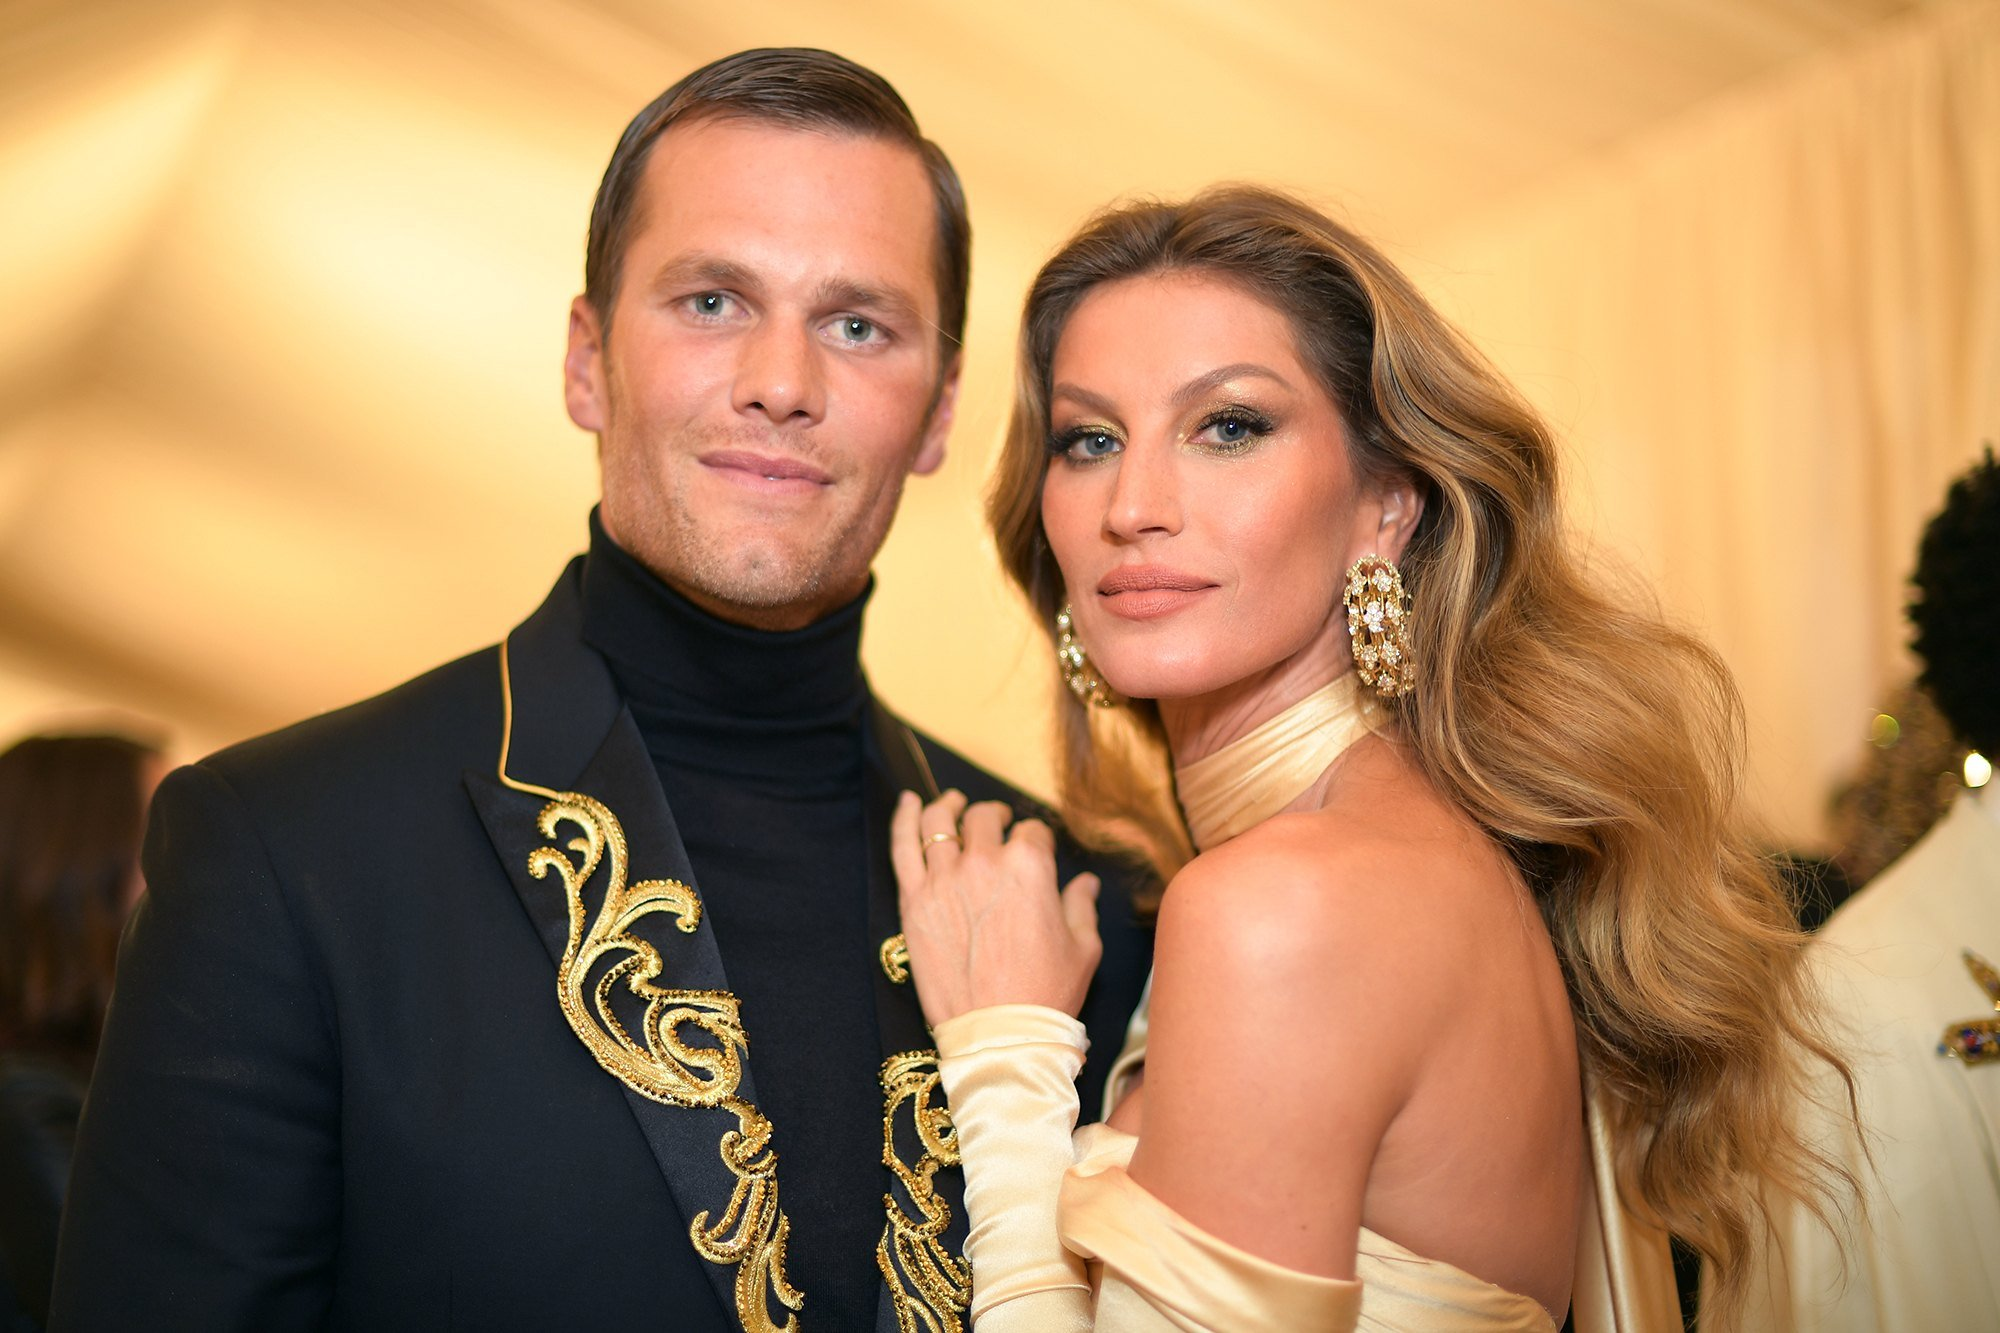 Tom Brady Reveals How He Avoided The Retirement Talk With His Wife Gisele Bundchen After His Super Bowl Victory!